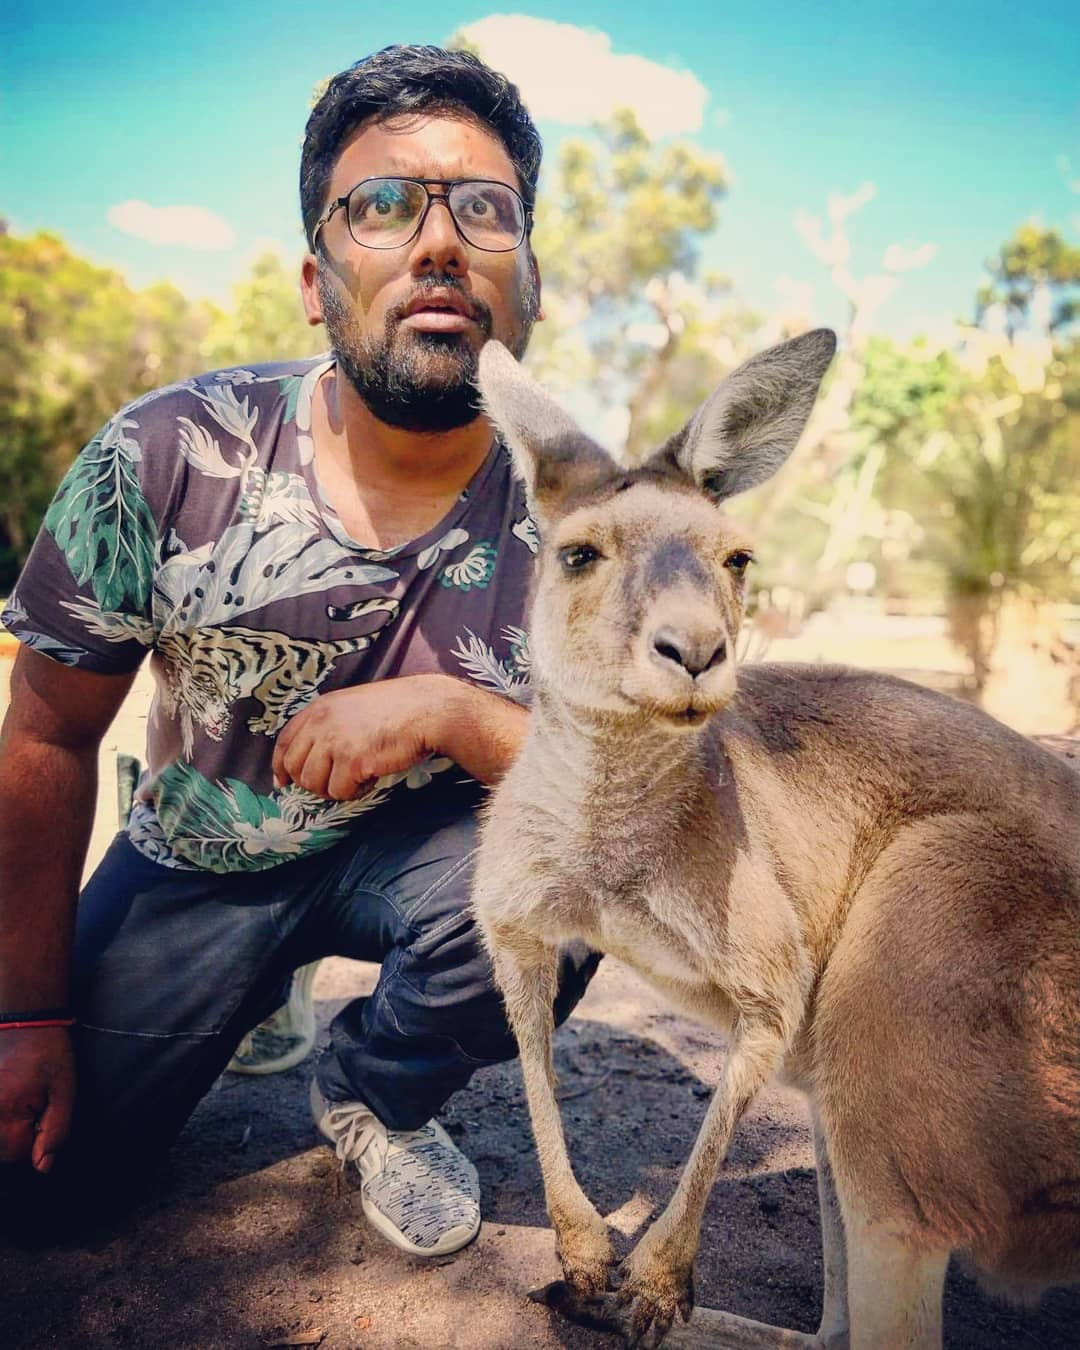 Kangaroo and I looking out for @ojasrawal  PC : @aarizsaiyed  #TcfAustralia #GigLife #Australia #Kangaroo #Portrait #Tourist